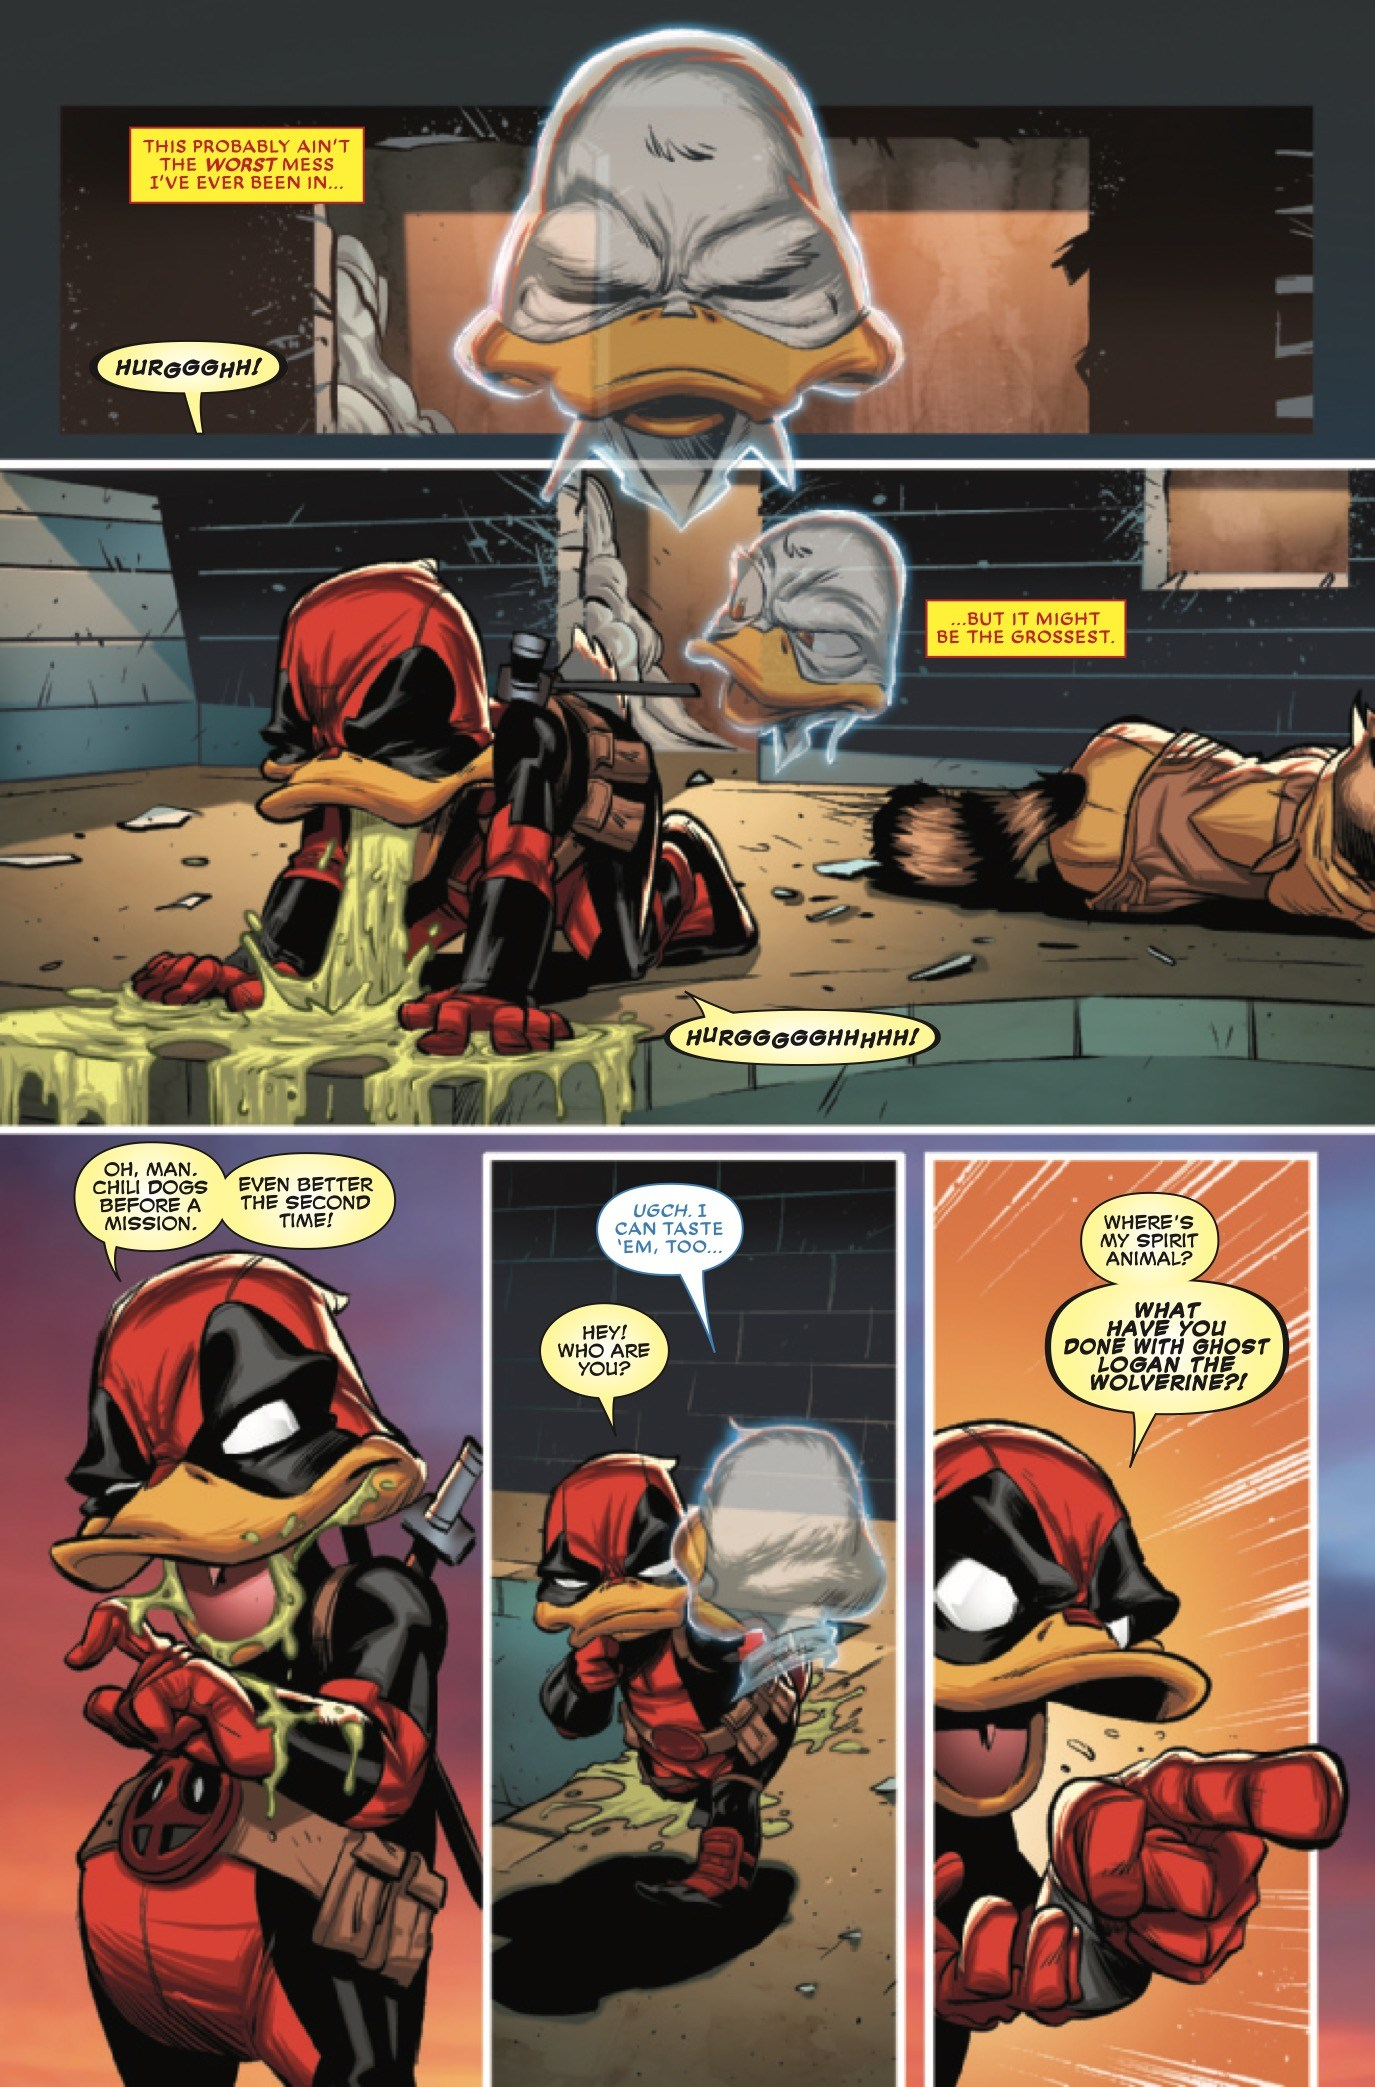 Deadpool the Duck. Oh my! That's a lot of pucking!